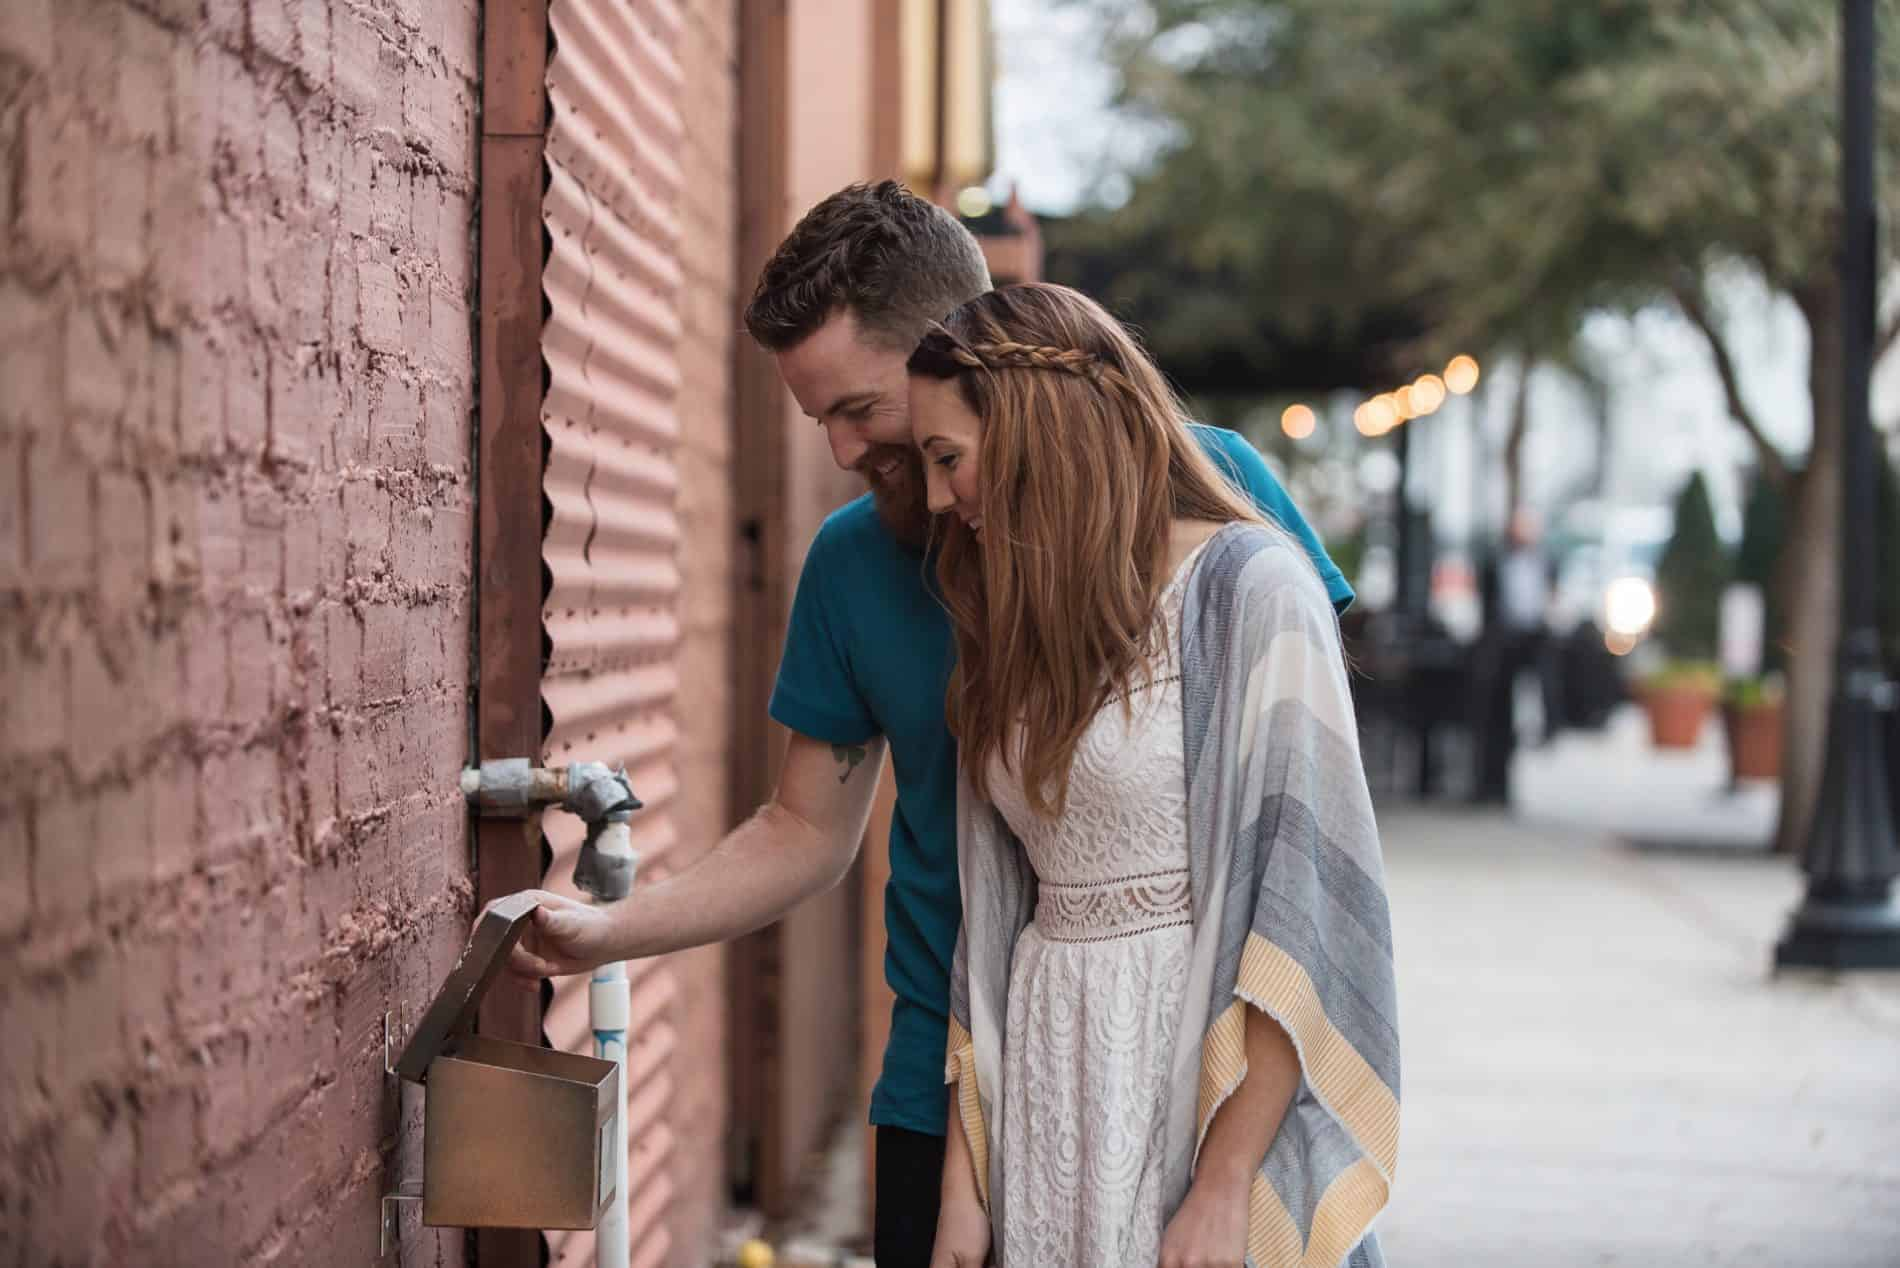 Winter Garden Engaged Couple check out a mailbox